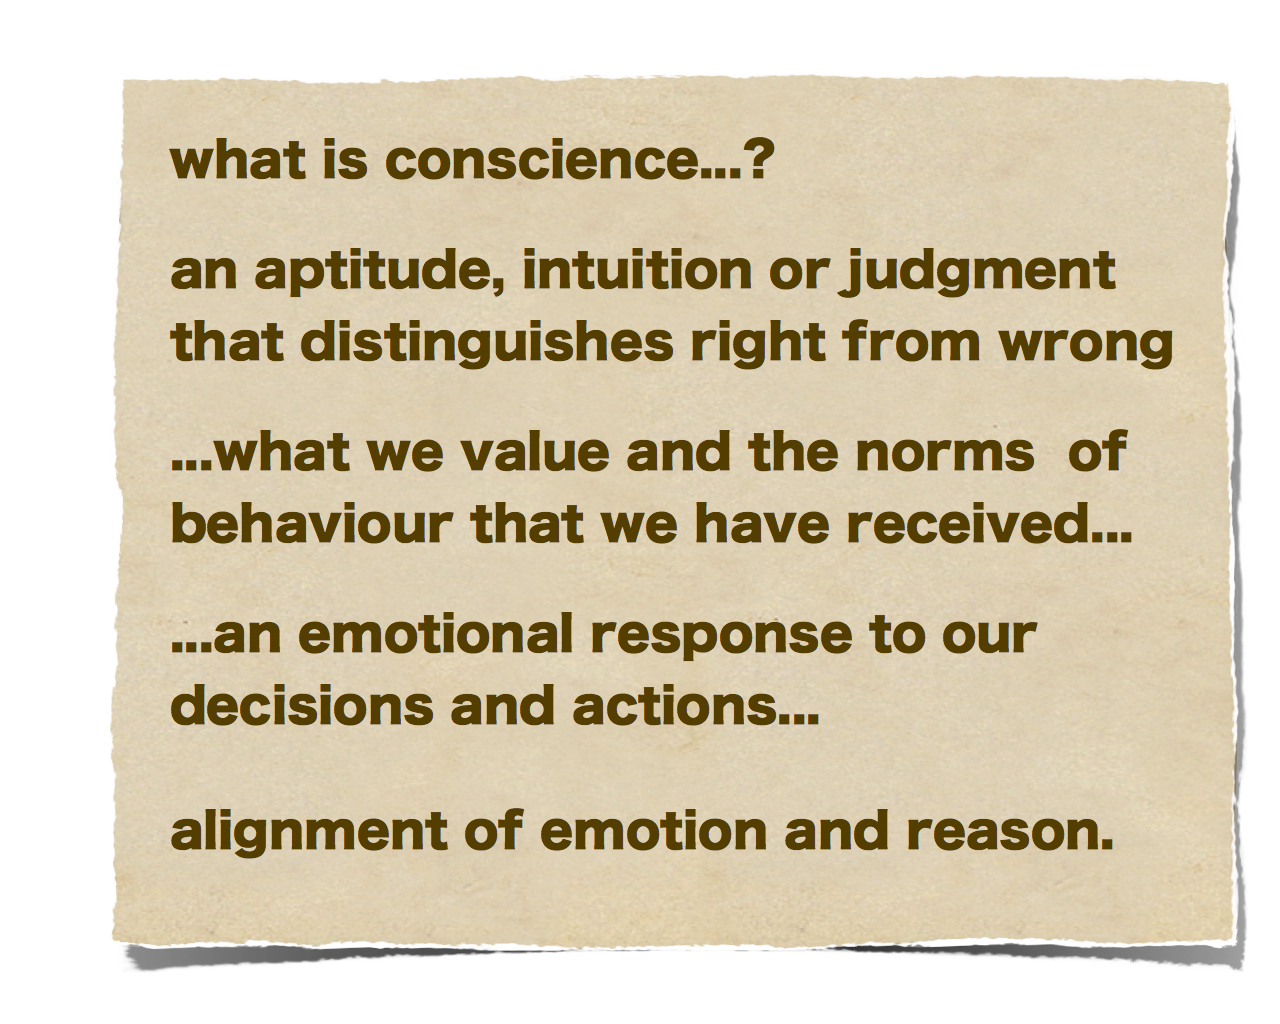 What is conscience